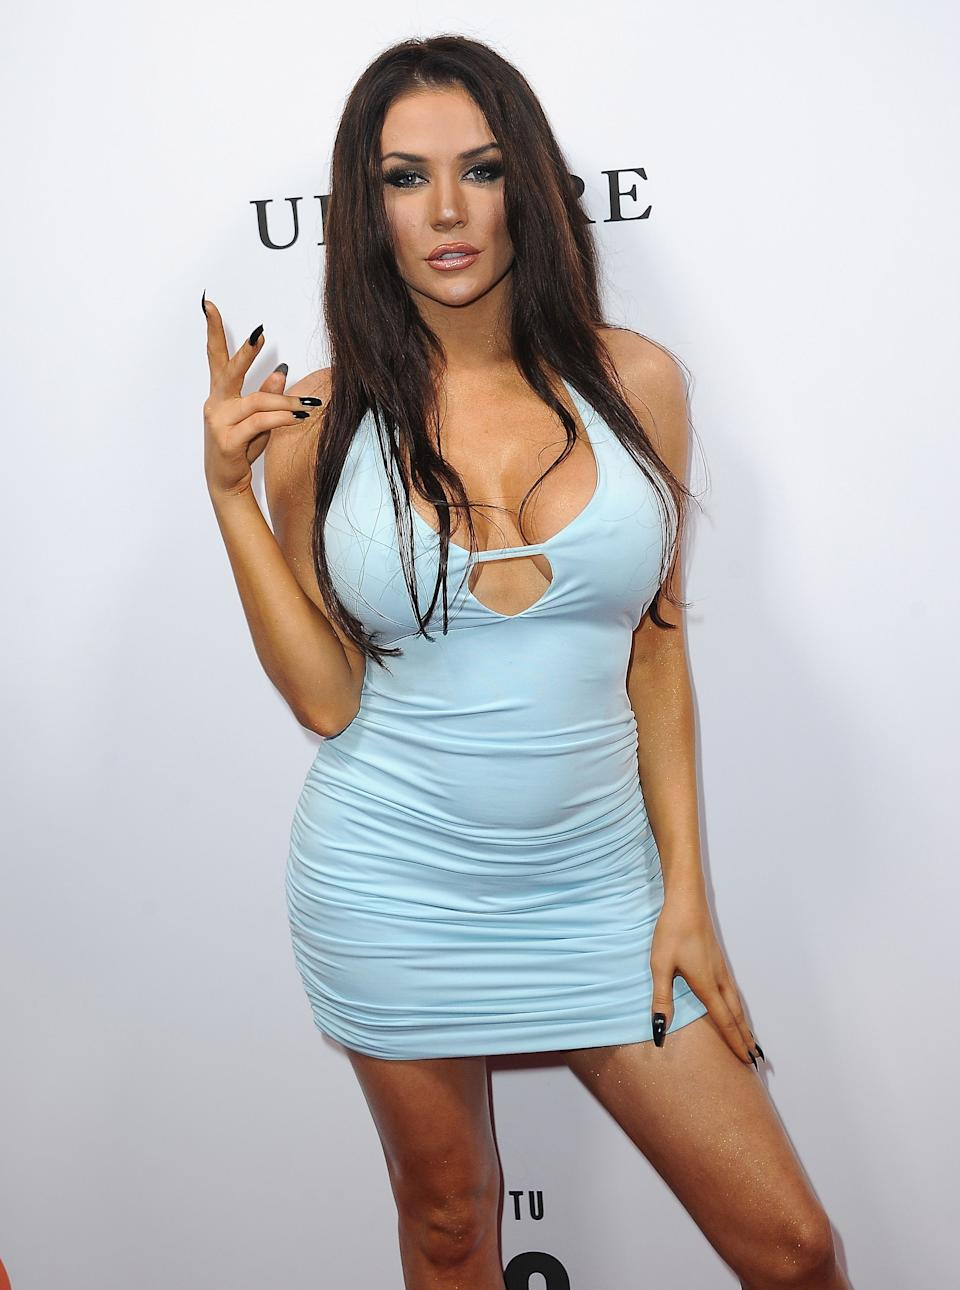 Courtney Stodden Shines bright like a diamond in this blue short dress and she shows of her beautiful legs.